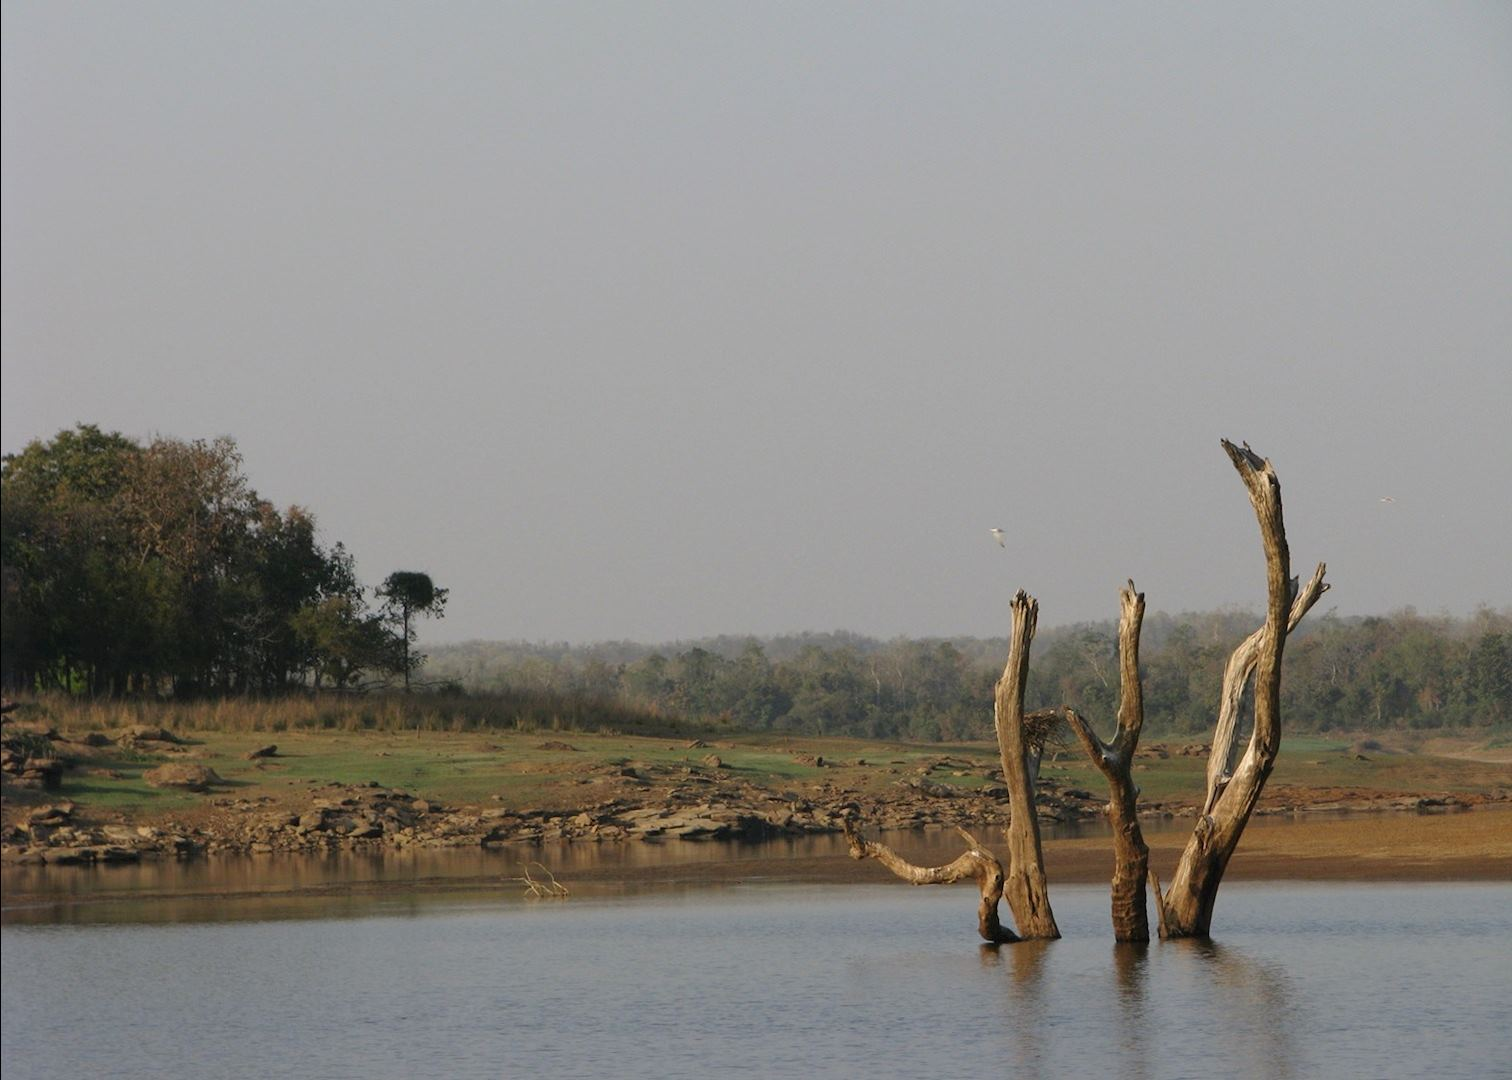 satpura national park Plan to visit satpura national park, india get details of location, timings and contact find the reviews and ratings to know better.